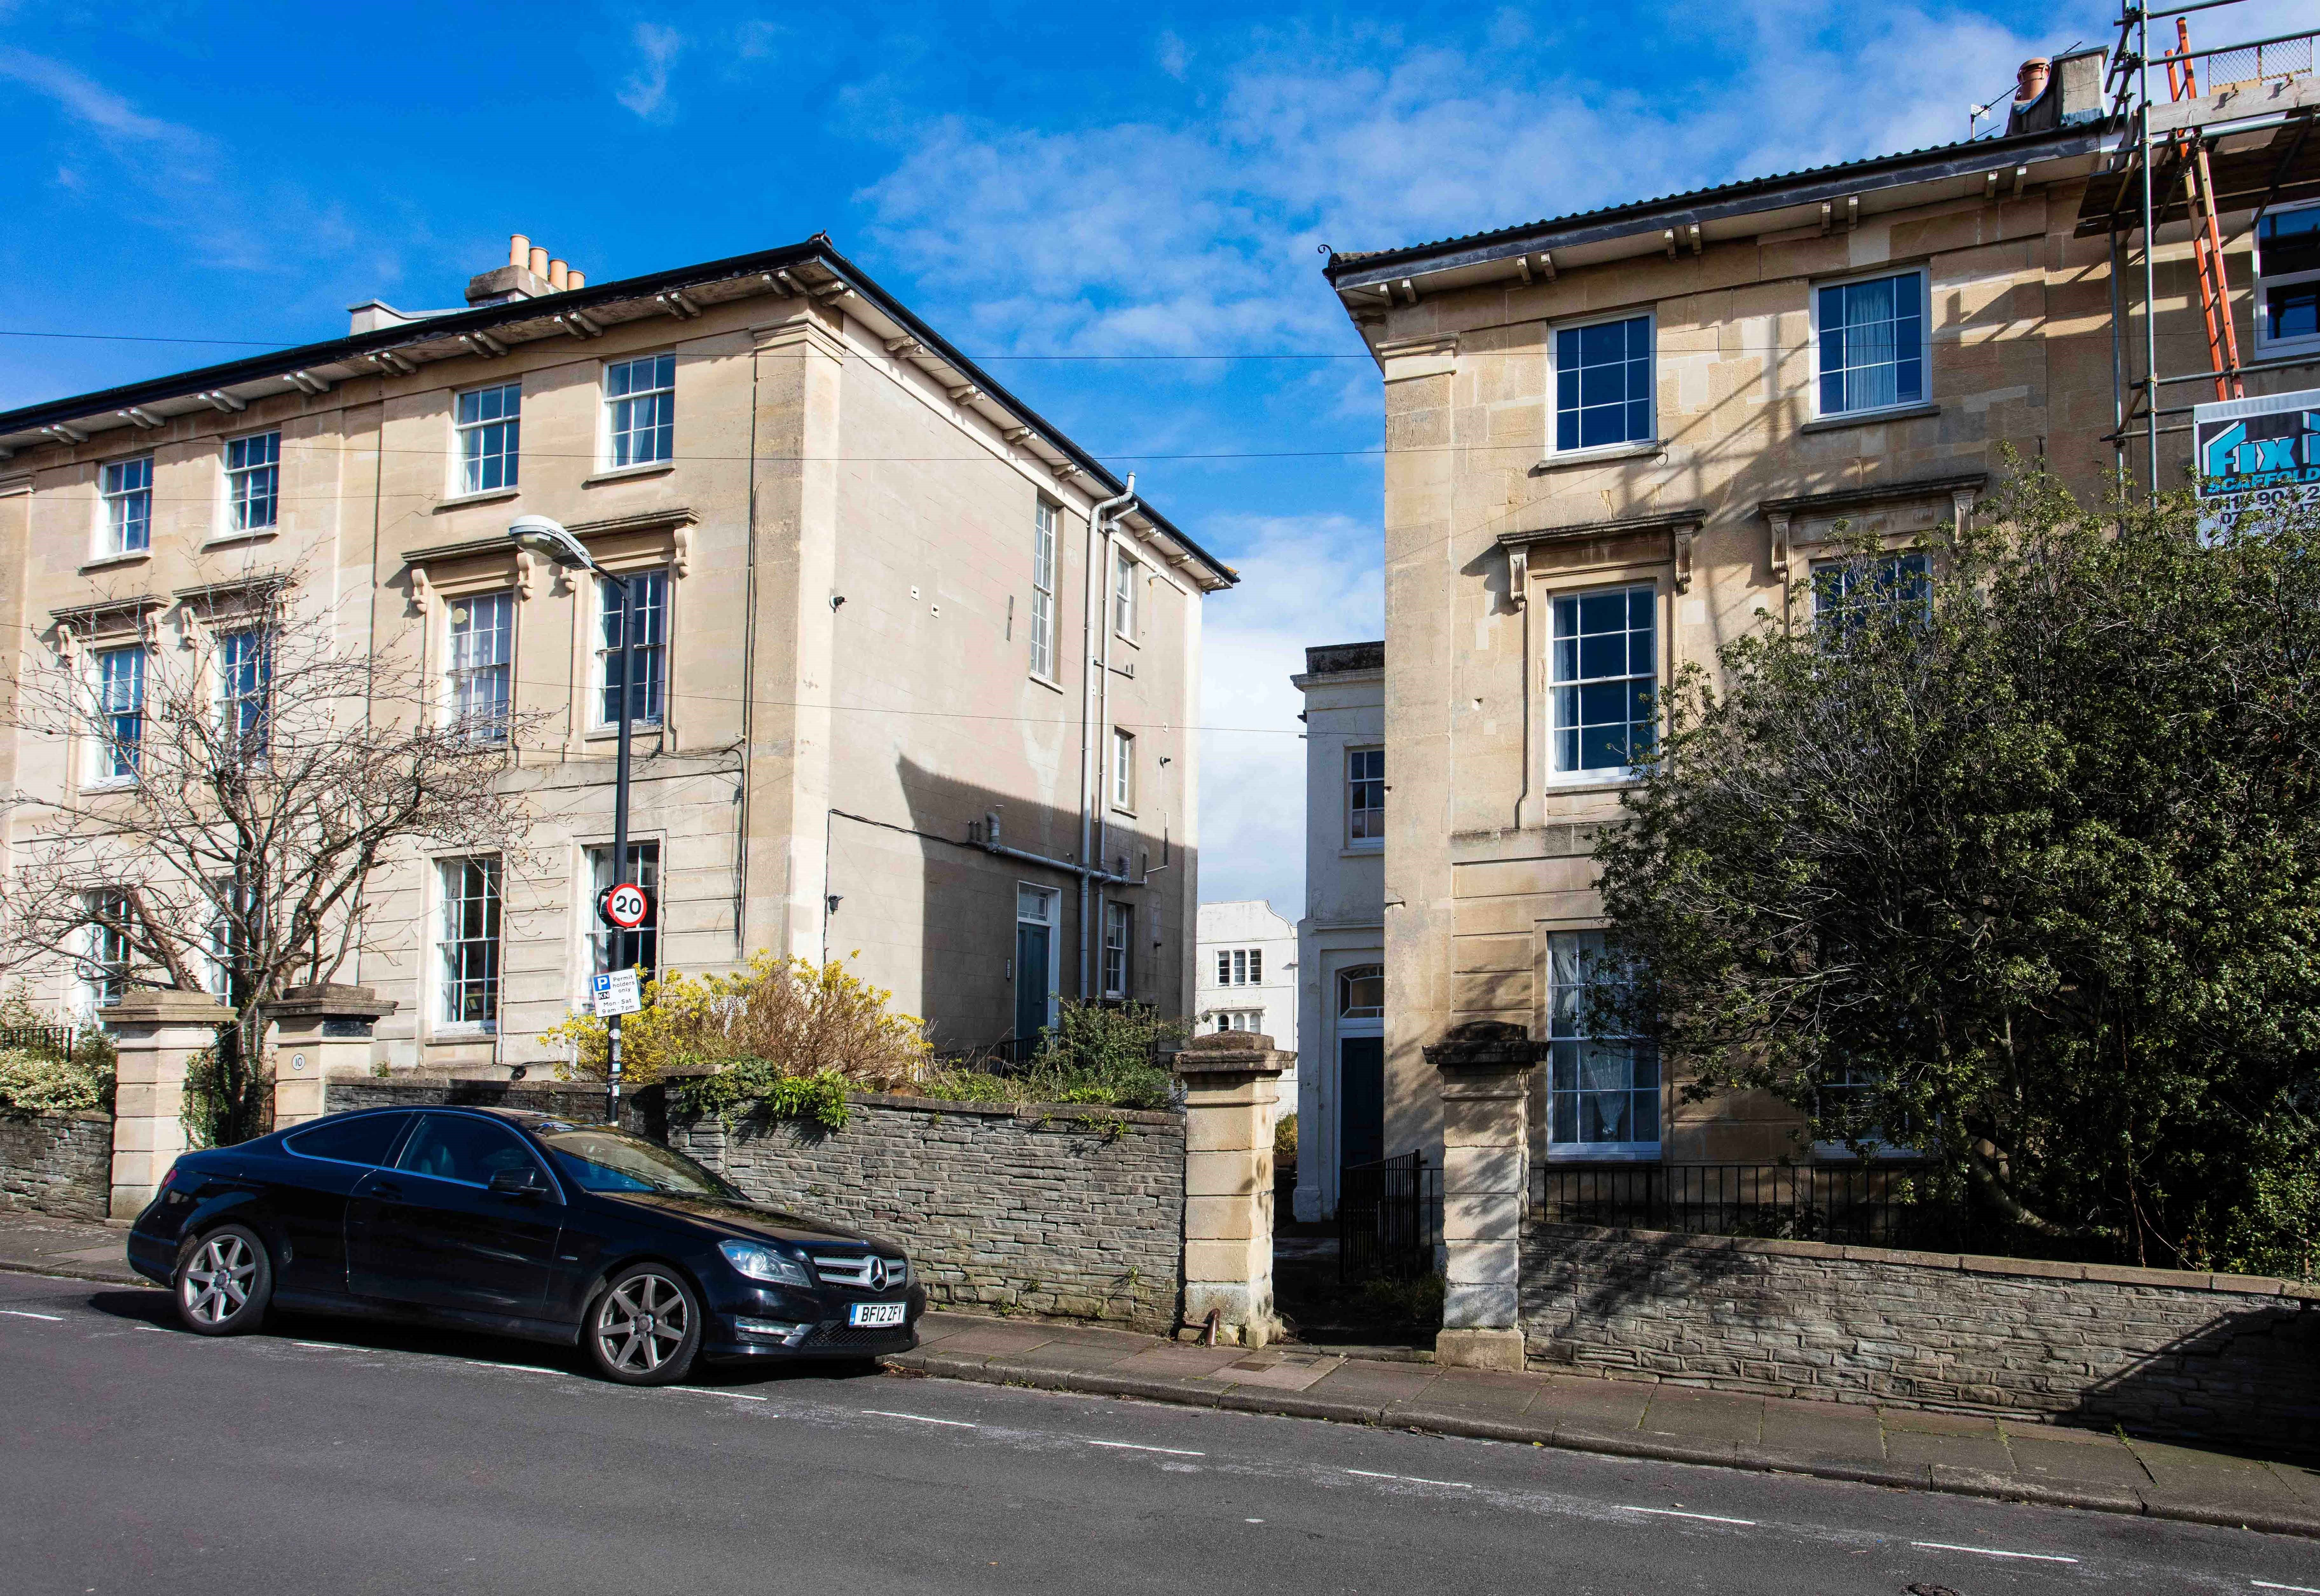 2 bed flat for sale in Cotham, BS6